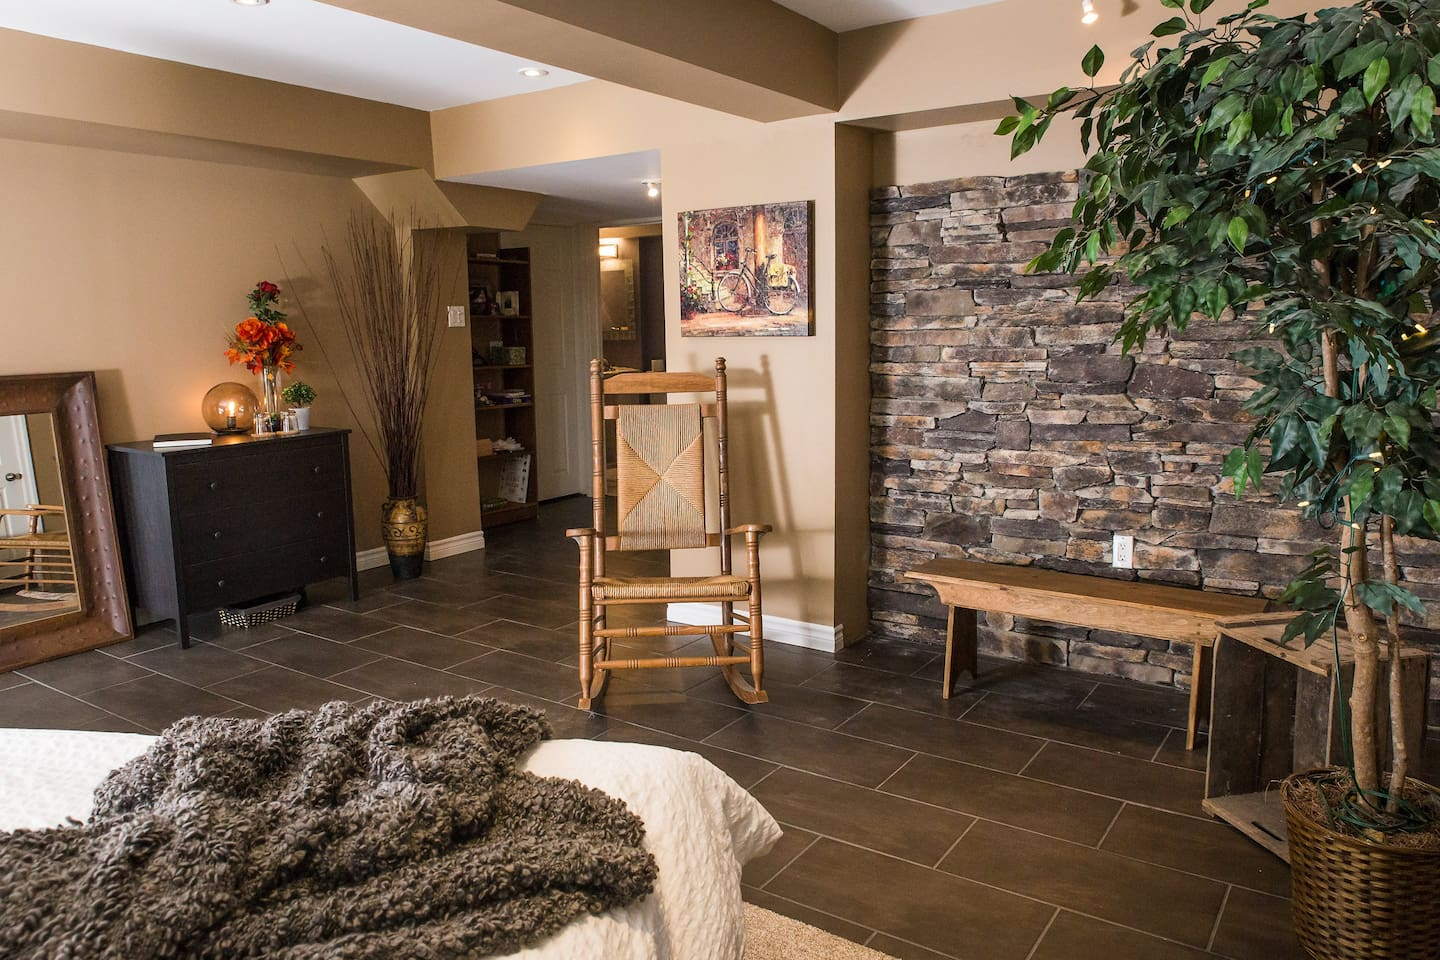 Warm, Relaxing Headwaters Retreat. Great for unwinding from a busy day.